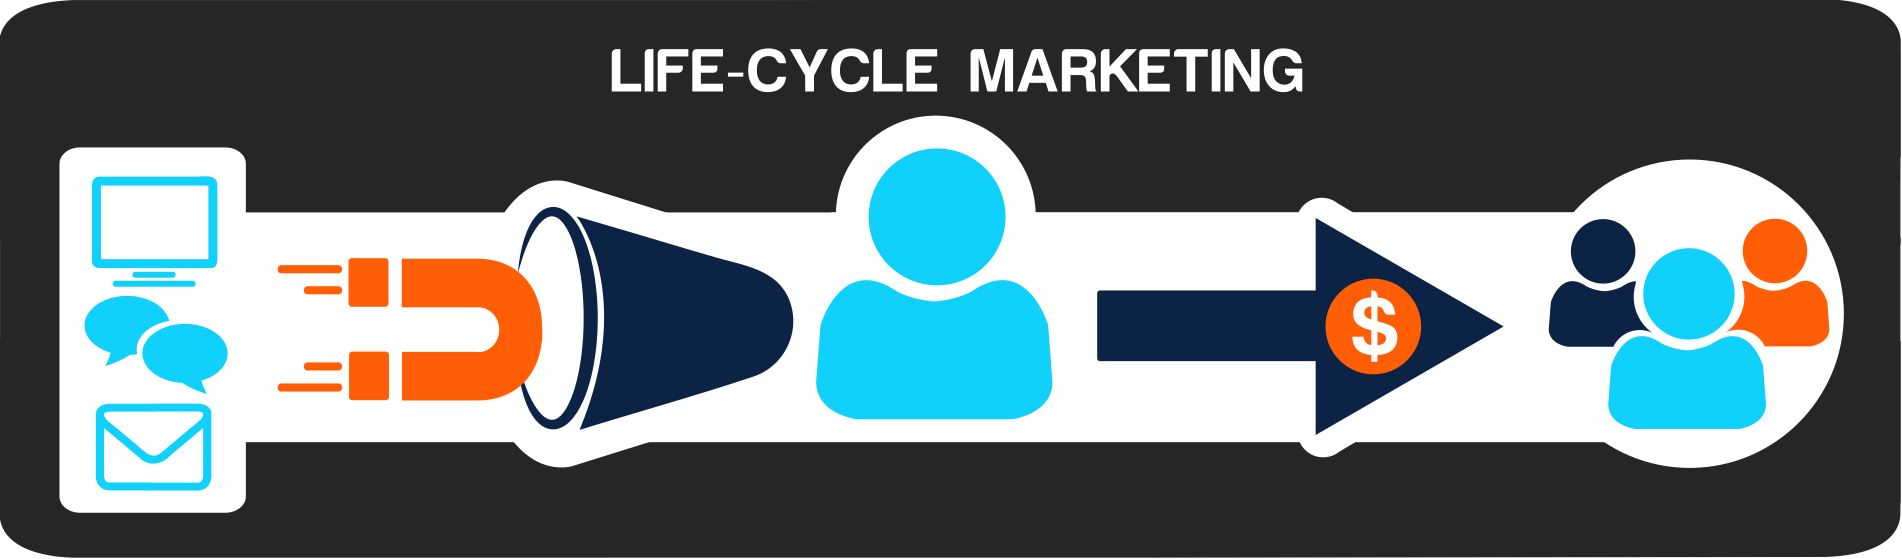 Life Cycle Marketing